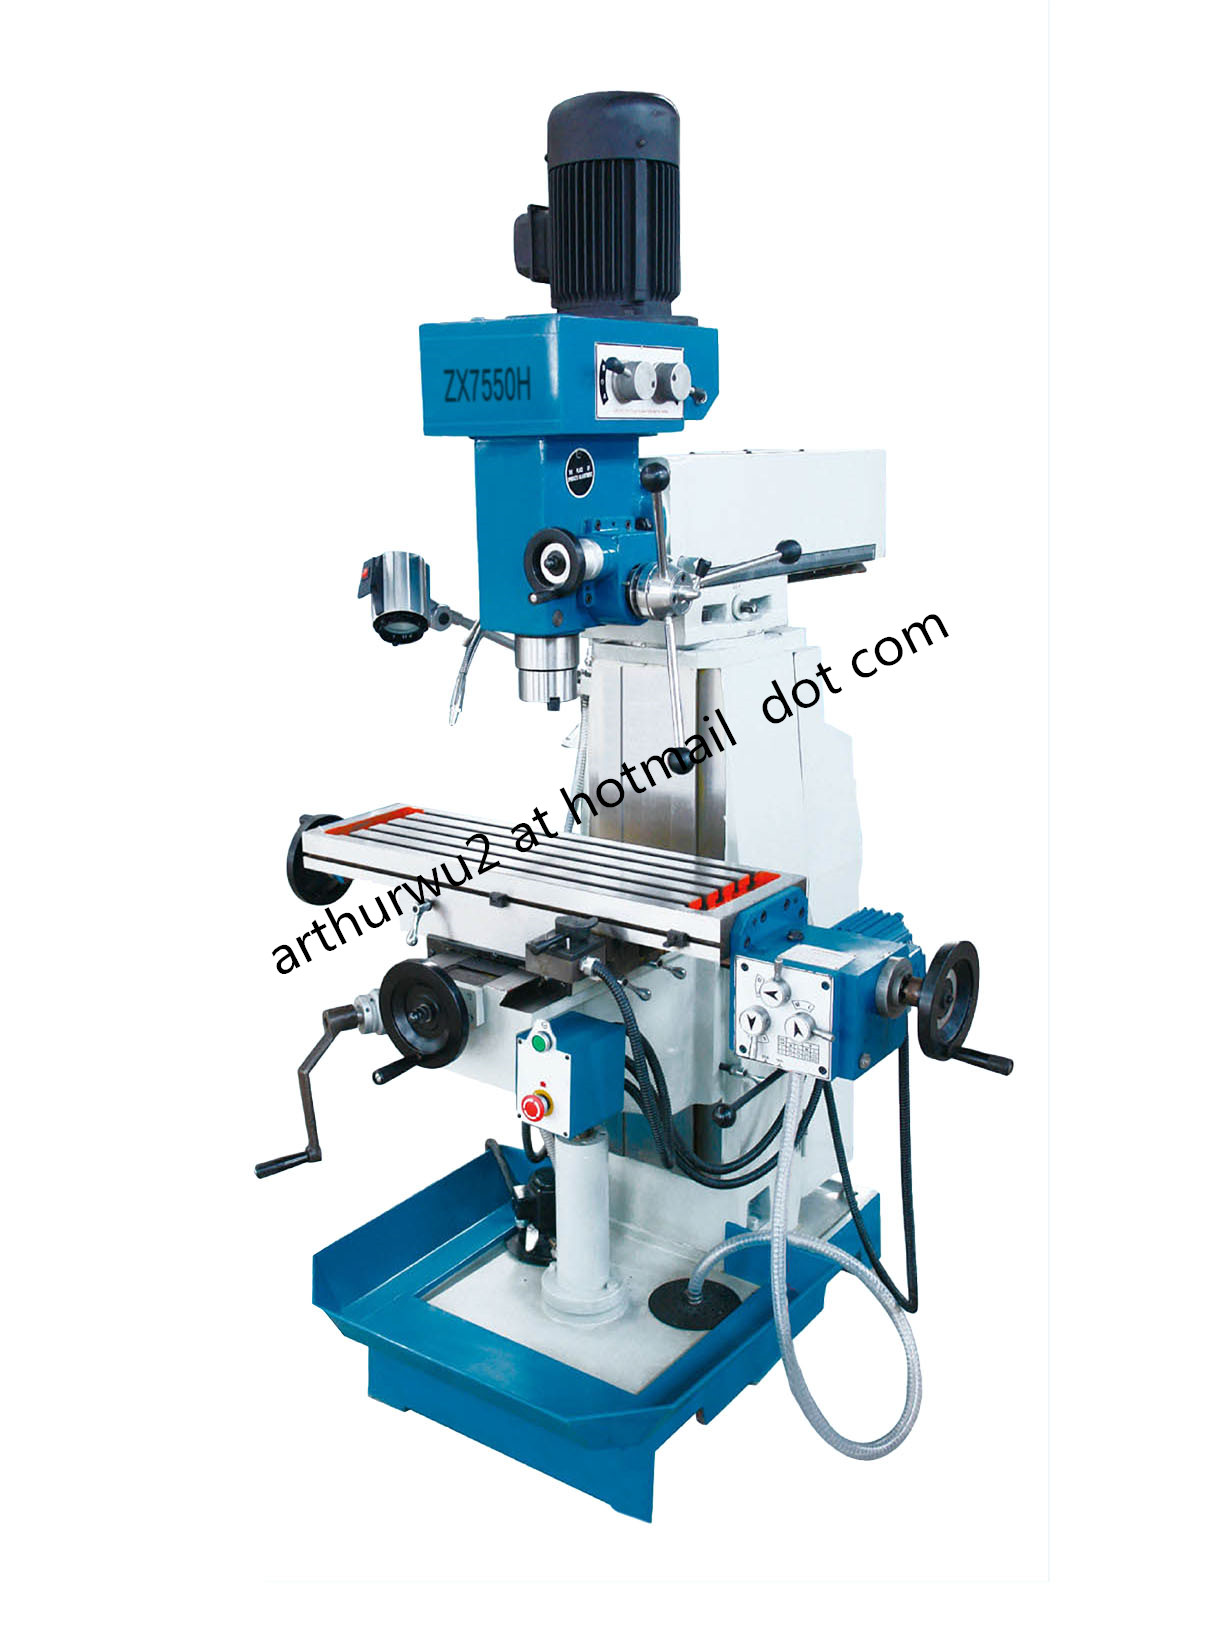 ZX7550H Drilling and Milling Machine